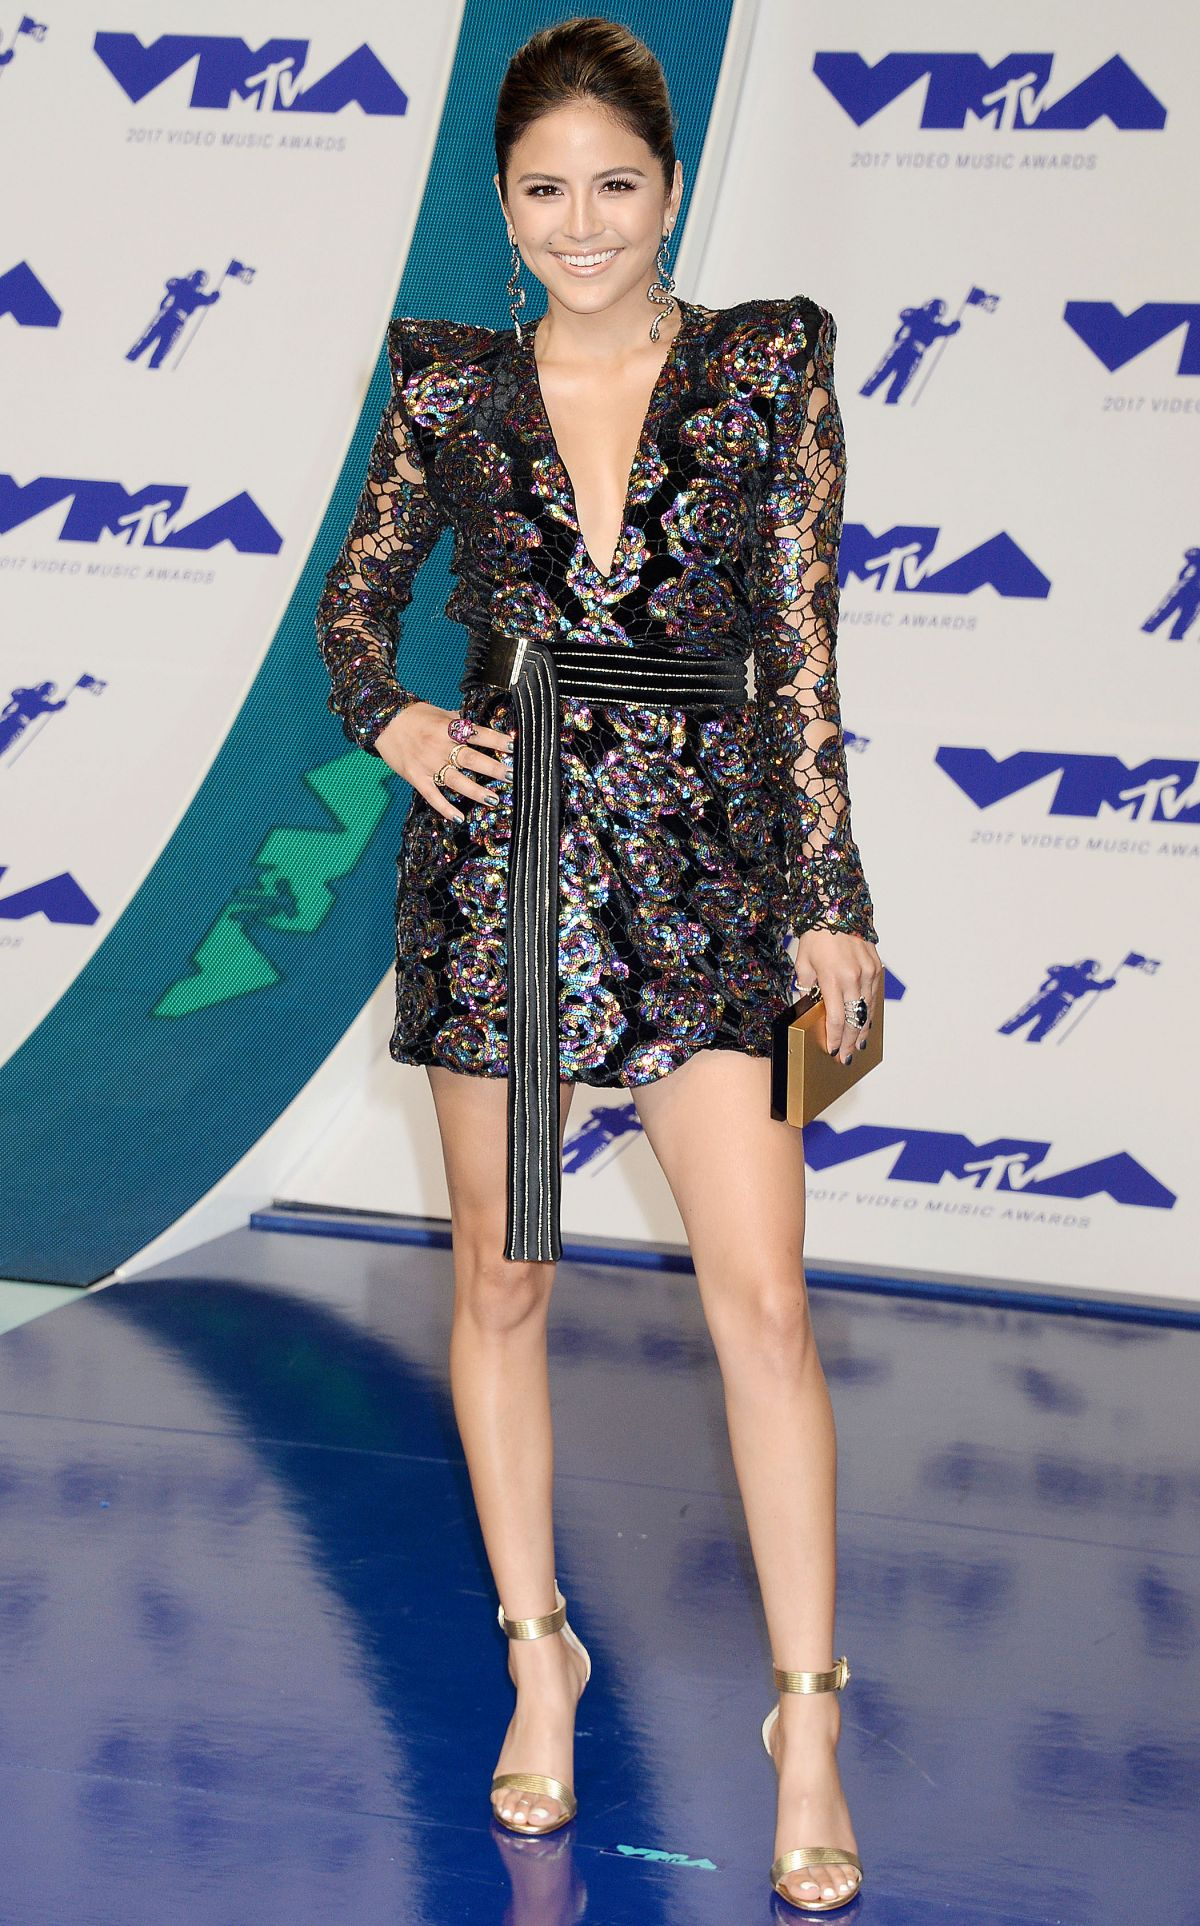 ERIN LIM at 2017 MTV Video Music Awards in Los Angeles 08/27/2017